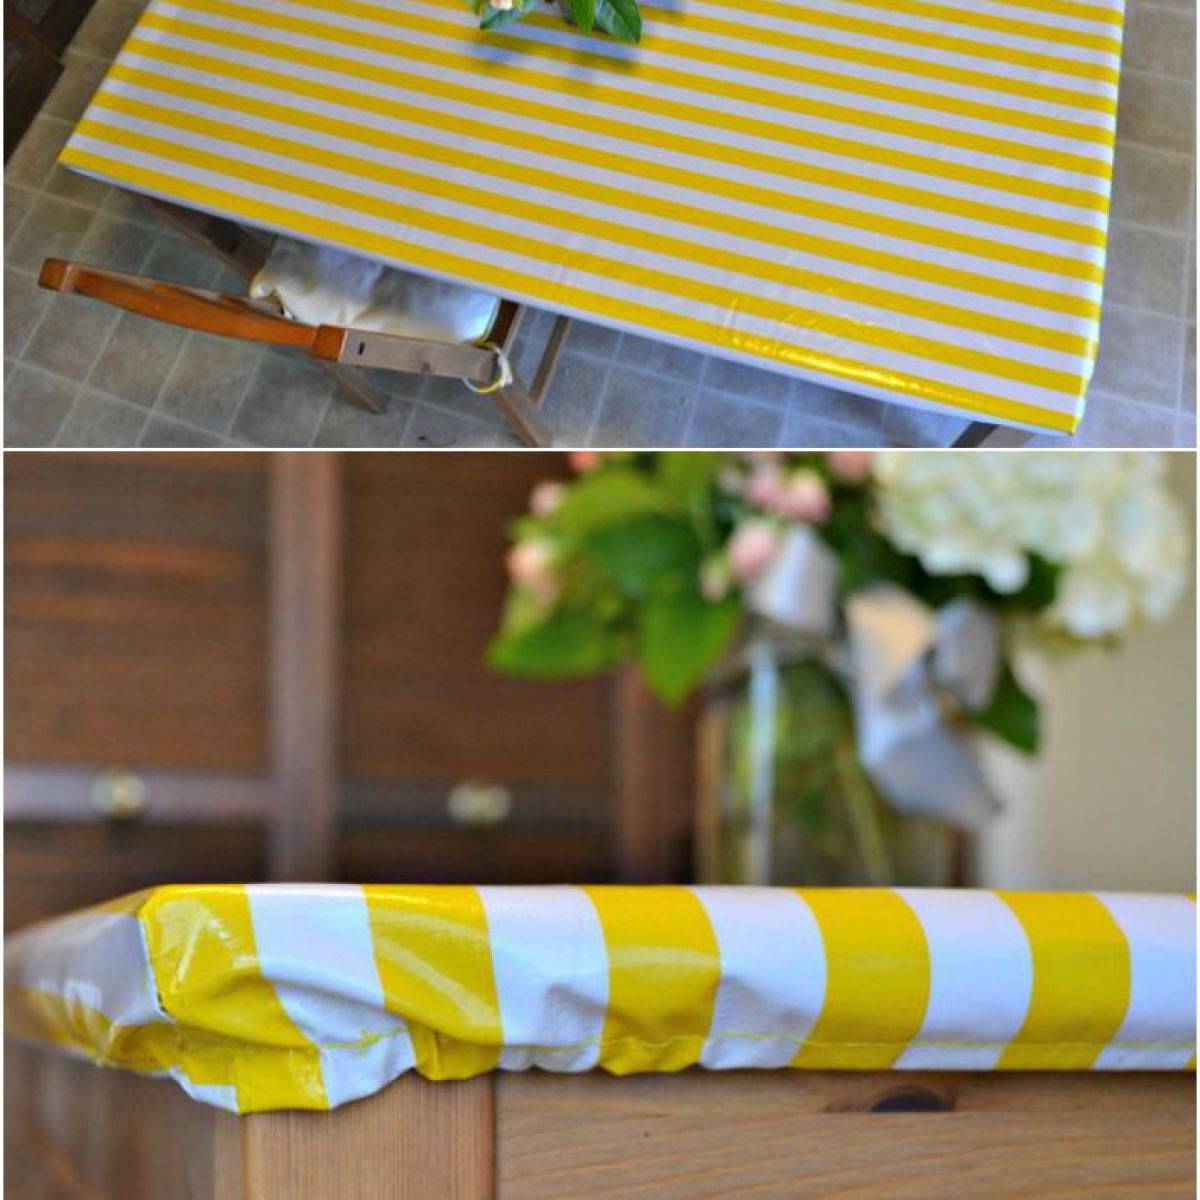 Easy And Simple How To Make A Rectangular Elasticized Table Cover | Table Covers Depot